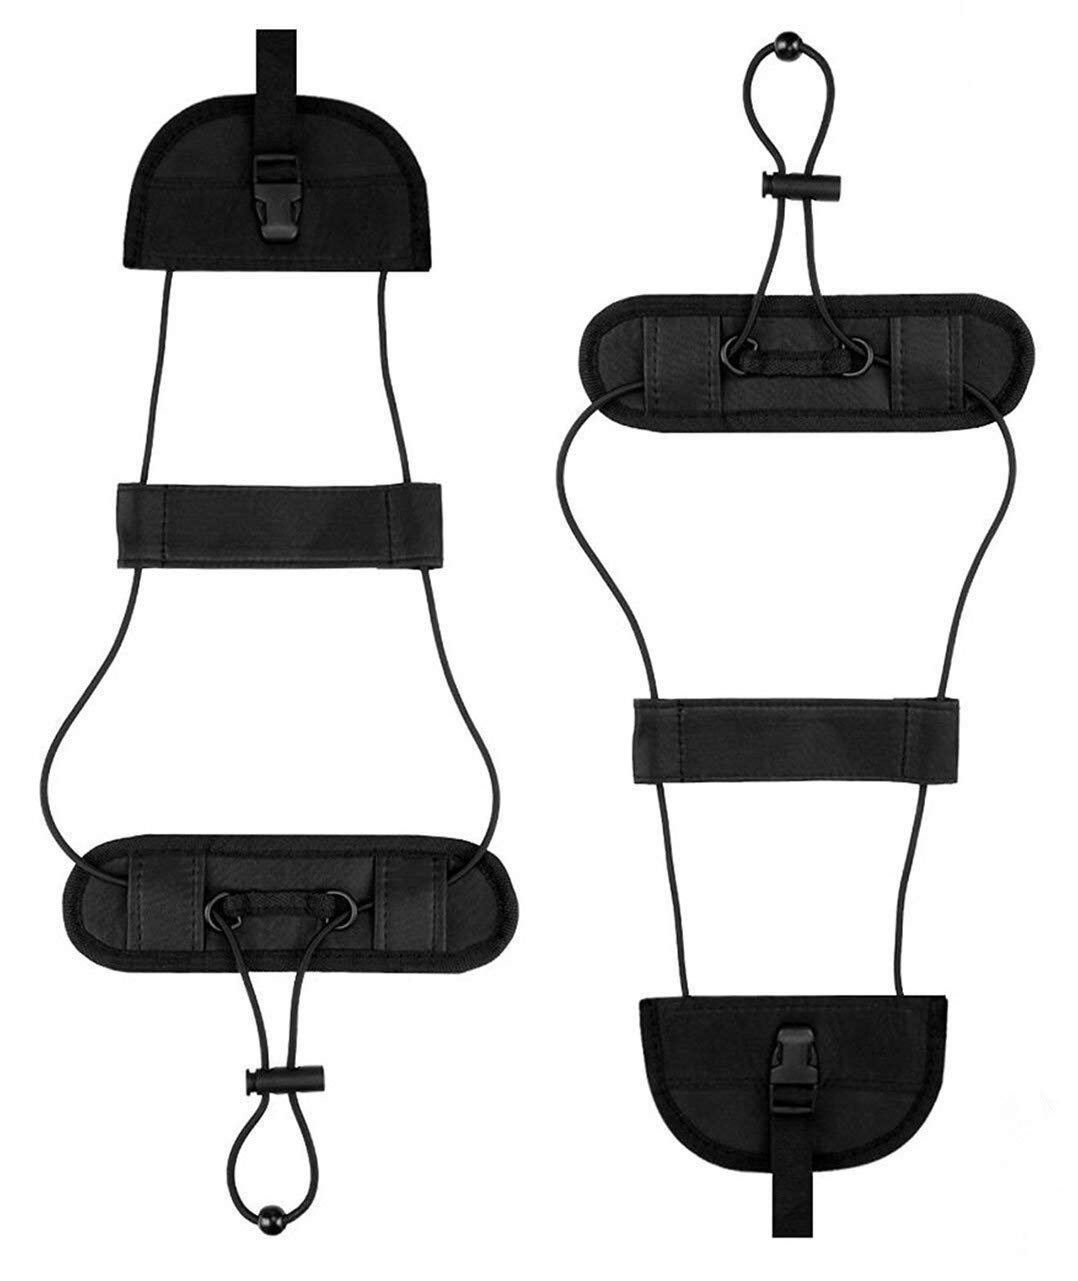 Luggage Straps Bag Bungee Lightweight and Durable Elastic Strap for Extra Luggage Adjustable Belt Travel Accessories 3 Pack Luggage Bungee Strap Add a Bag Black